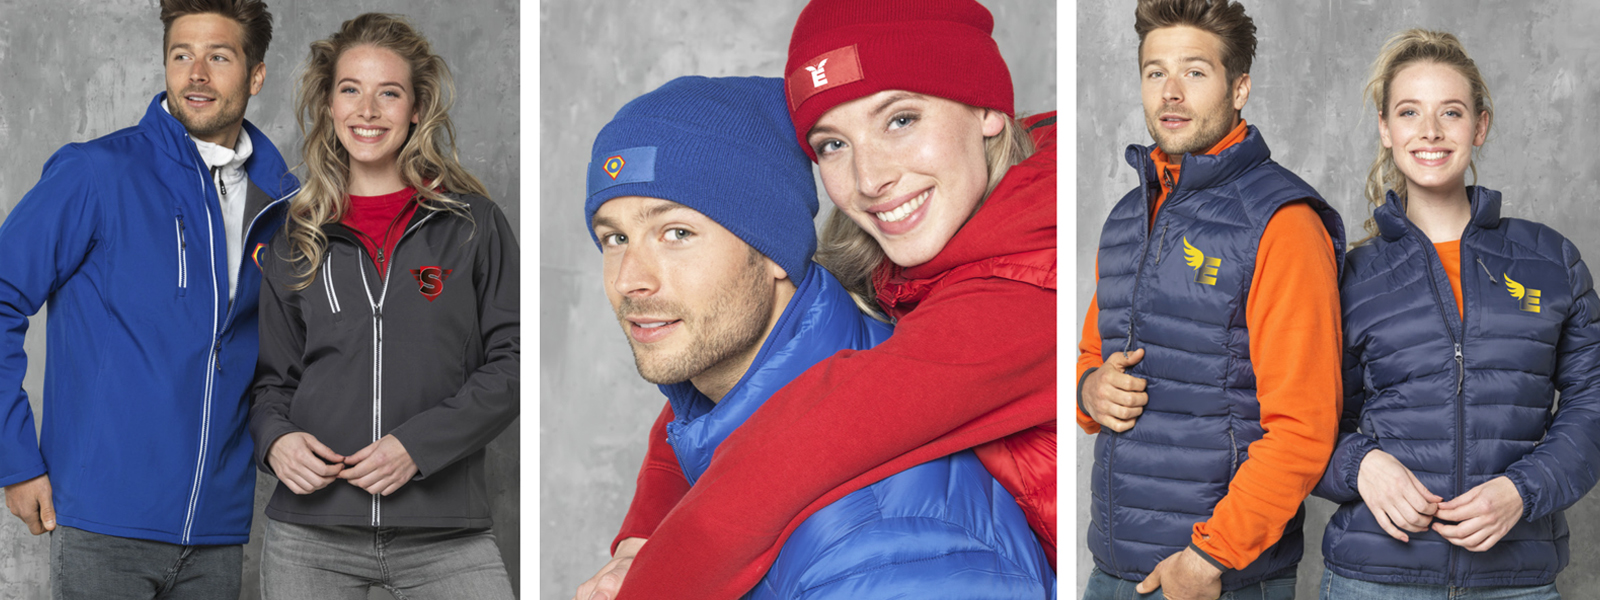 WINTER WARMERS - Insulated Bodywarmers and Jackets